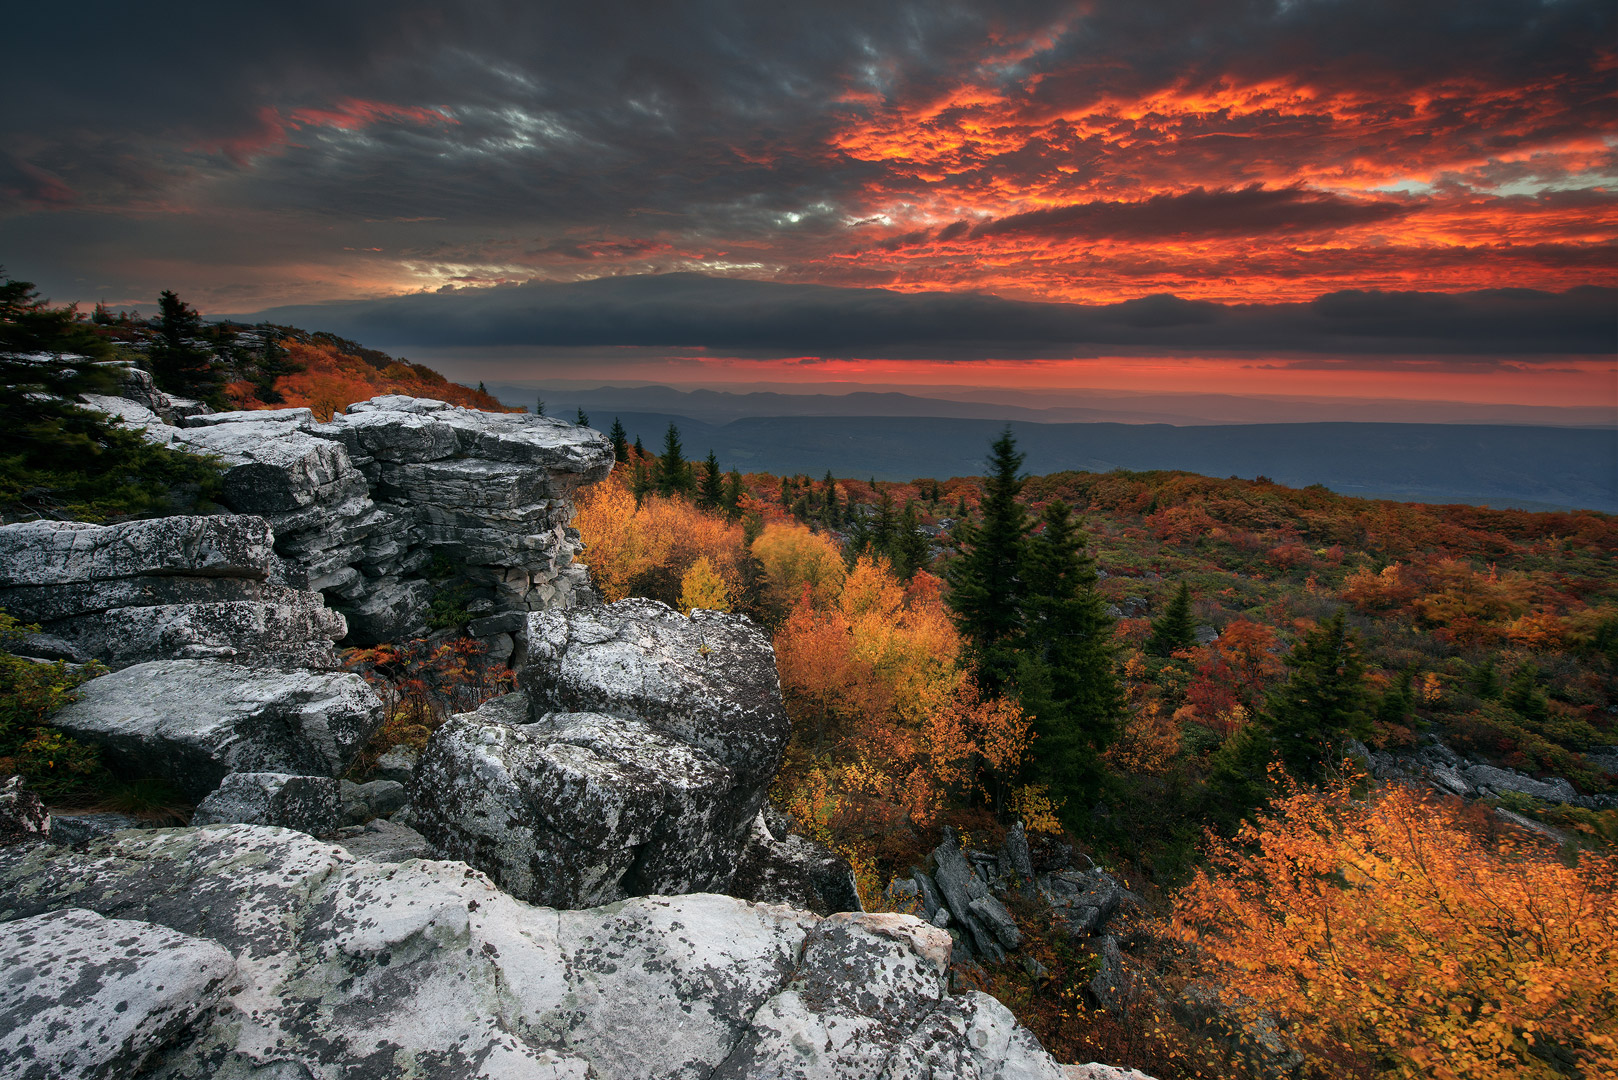 Rhododendron, Ferns, West Virginia, Bear Rocks, Dolly Sods Wilderness, Canaan Valley, Hemlock, Dramatic Sky, Dolly Sods, Allegheny Mountains, Bear Rocks Preserve, Monongahela National Forest, photo